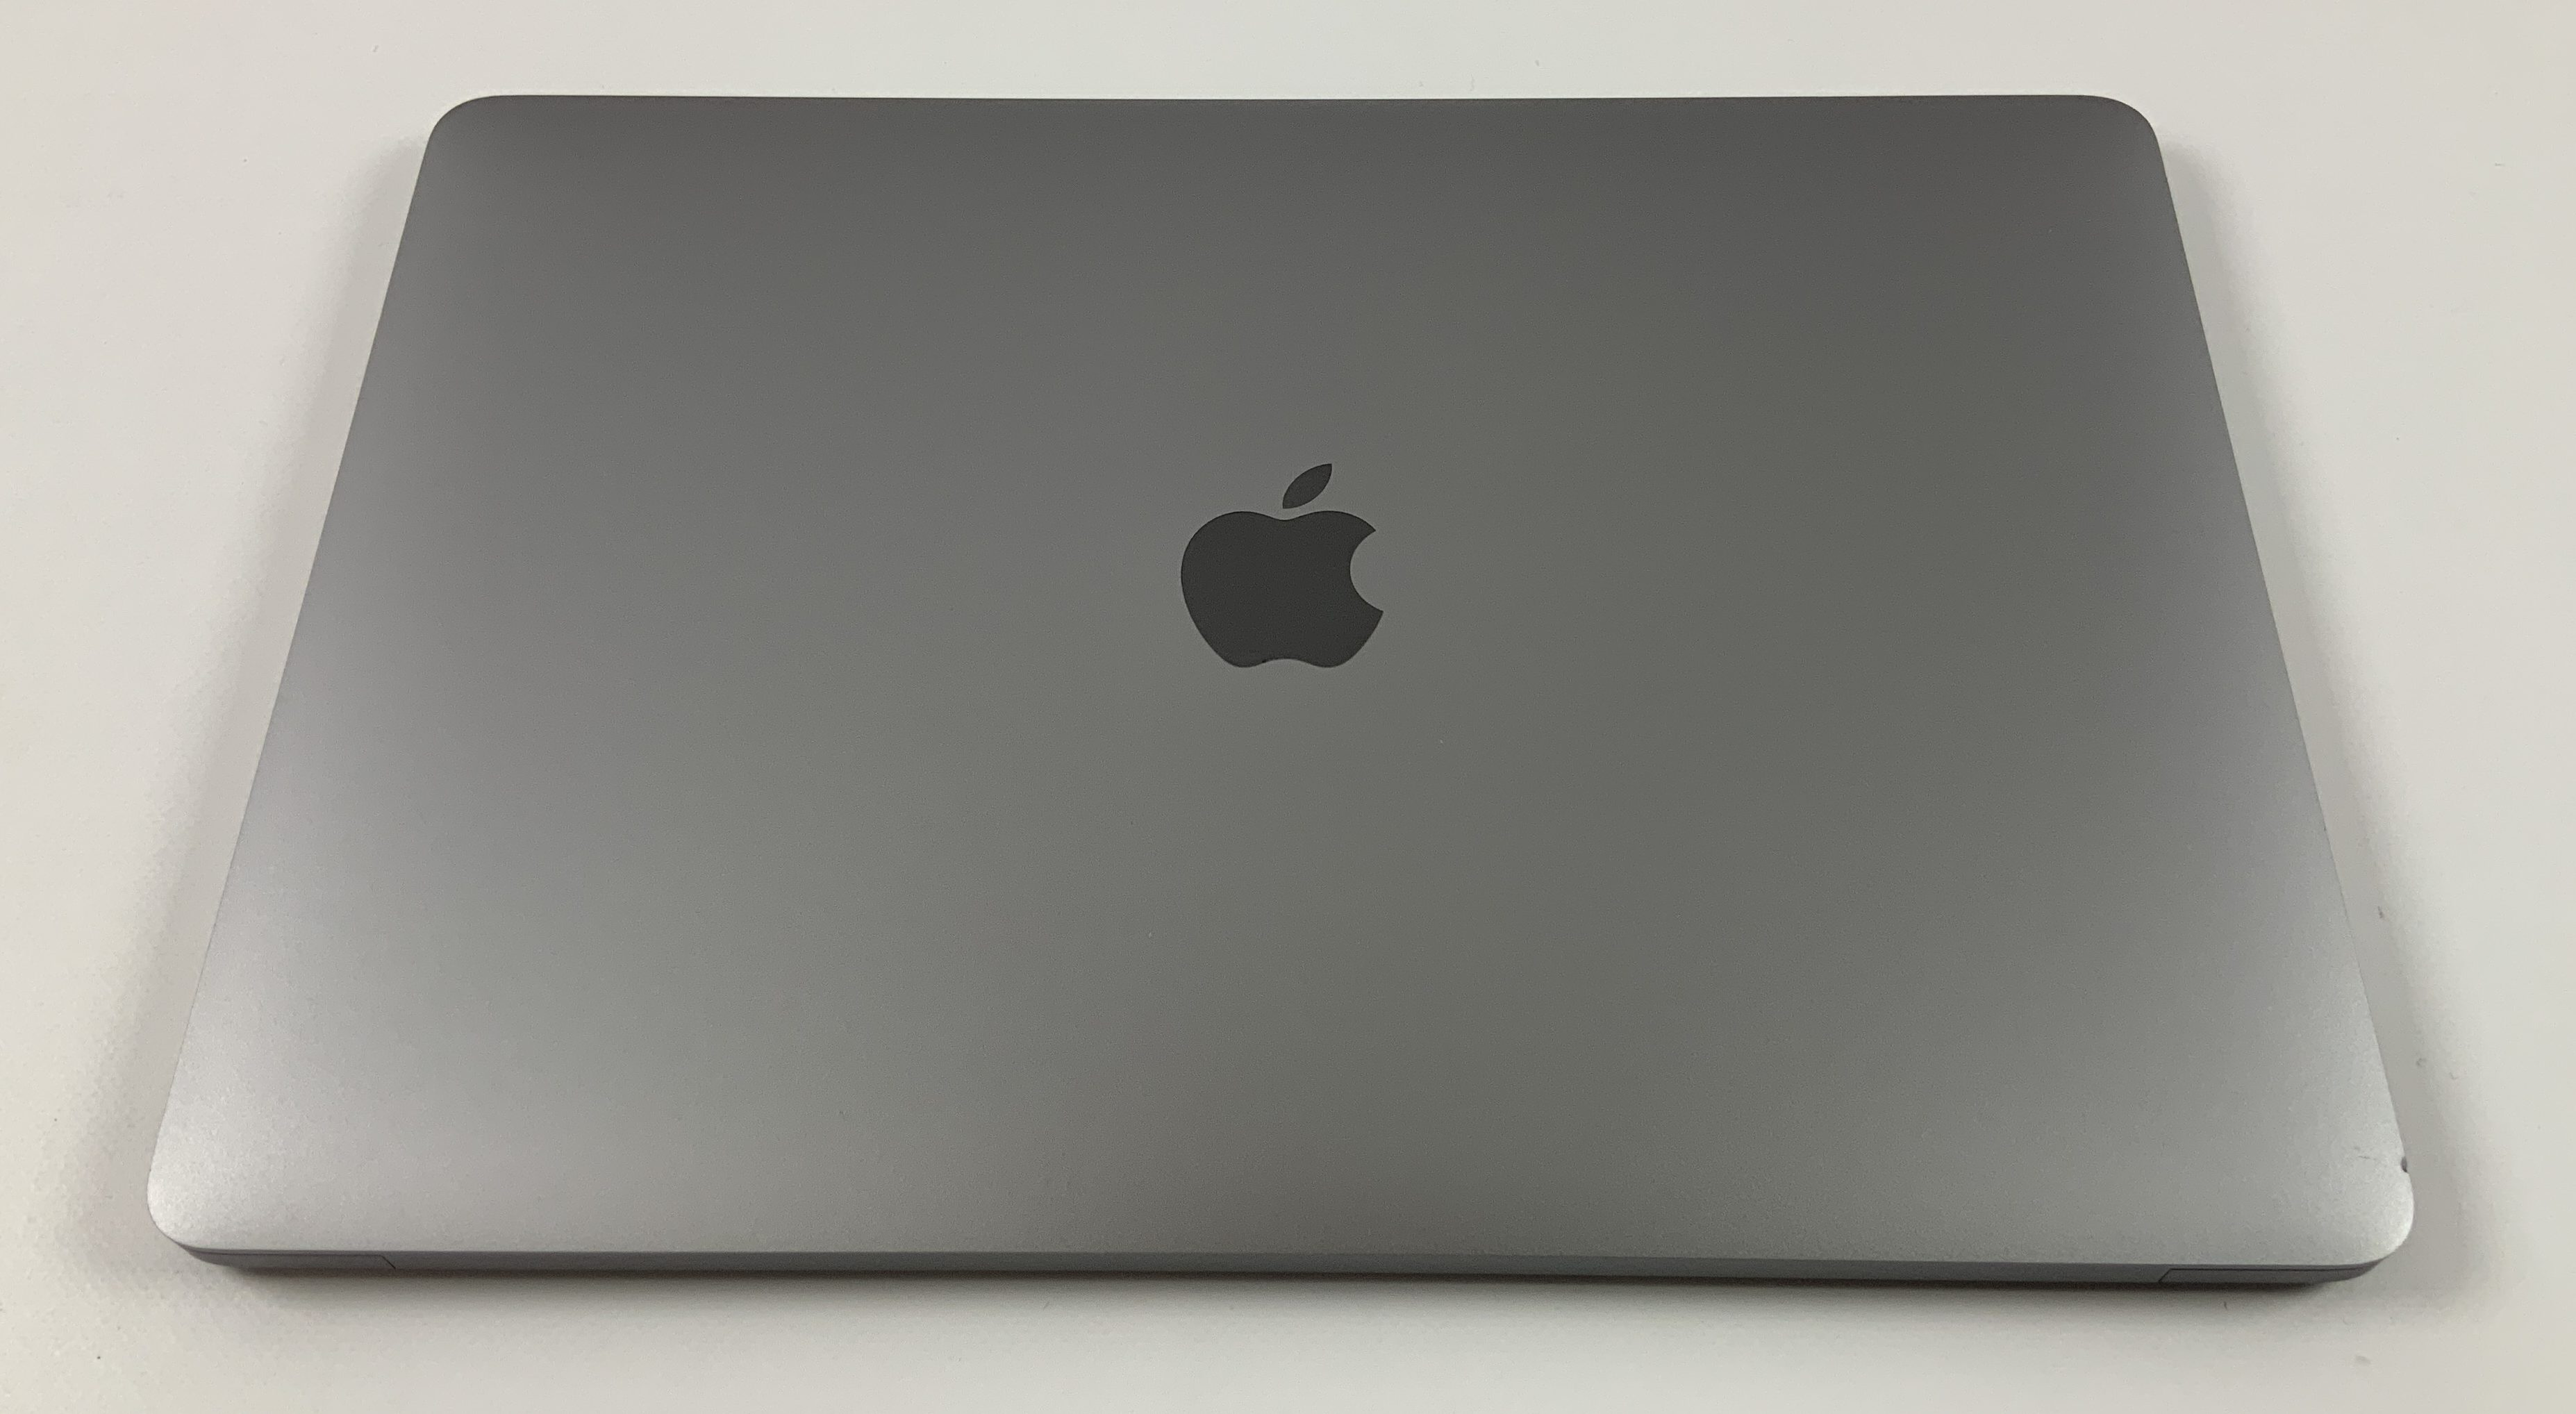 "MacBook Pro 13"" 2TBT Mid 2017 (Intel Core i5 2.3 GHz 8 GB RAM 256 GB SSD), Space Gray, Intel Core i5 2.3 GHz, 8 GB RAM, 256 GB SSD, imagen 2"